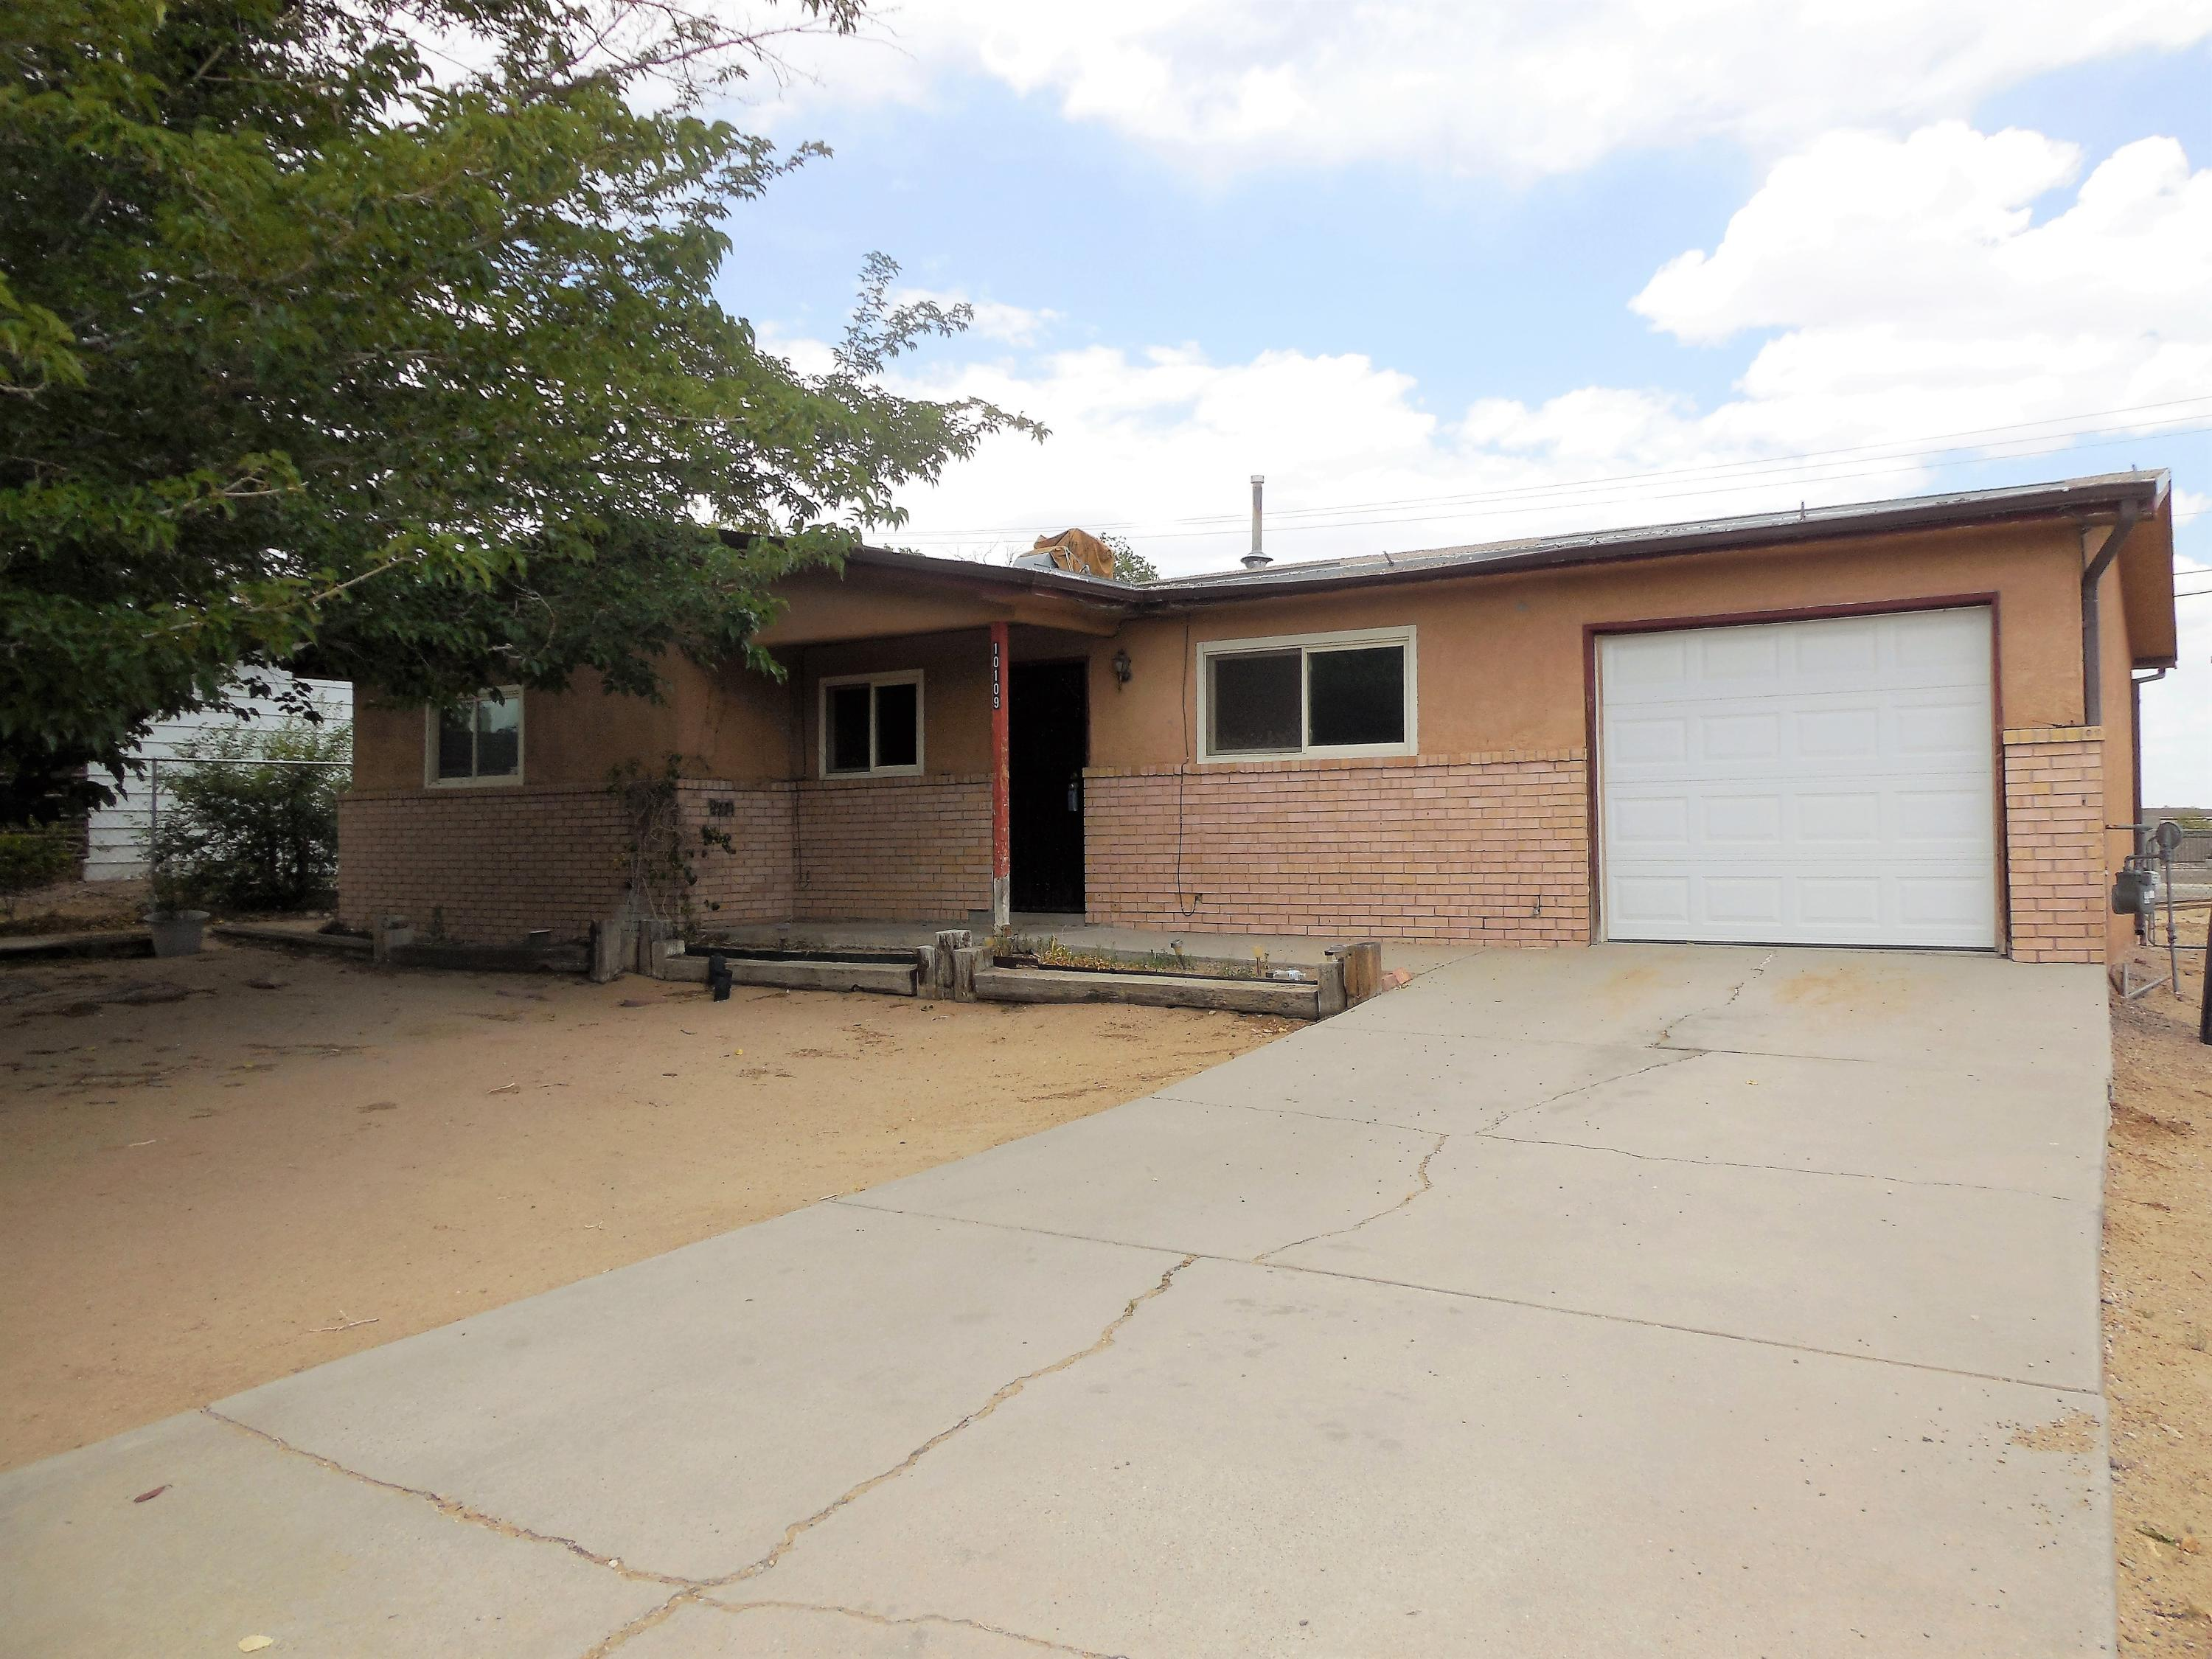 This is a fixer upper with four bedrooms and 1 3/4 baths on a 0.18 acre lot. There is a newer storage shed in the backyard. Home has some  newer and some older windows and security doors front and back.